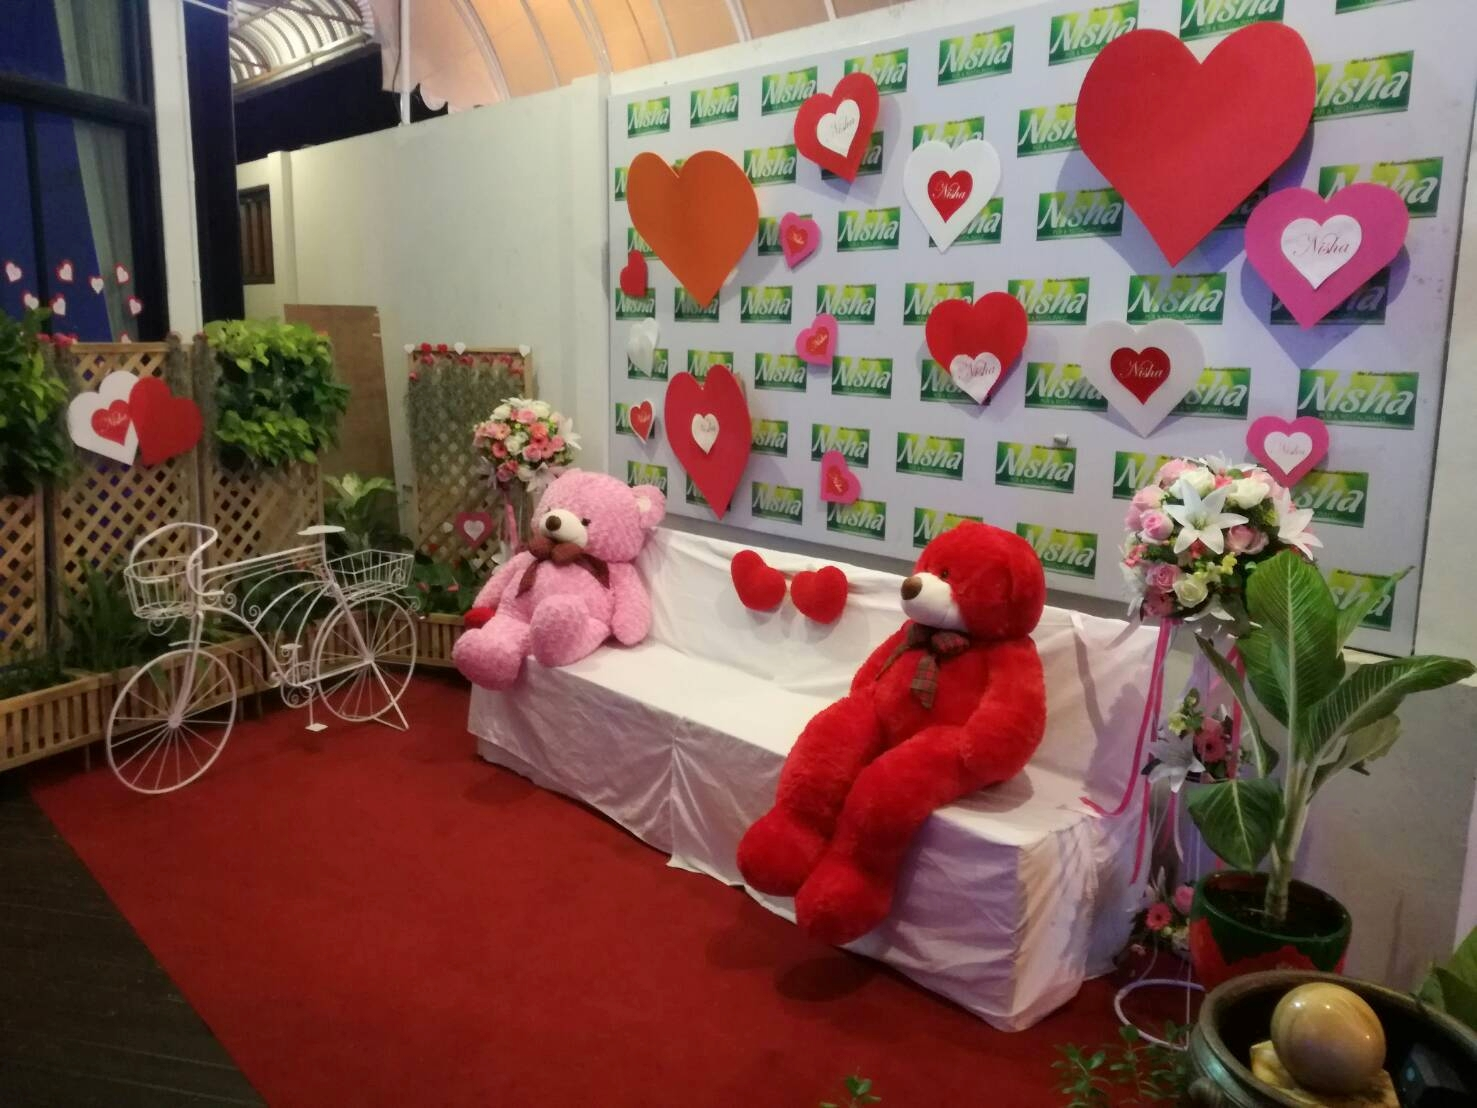 Nisha Pub & Restaurant set up magical d้cor for love filled couples to take photos.